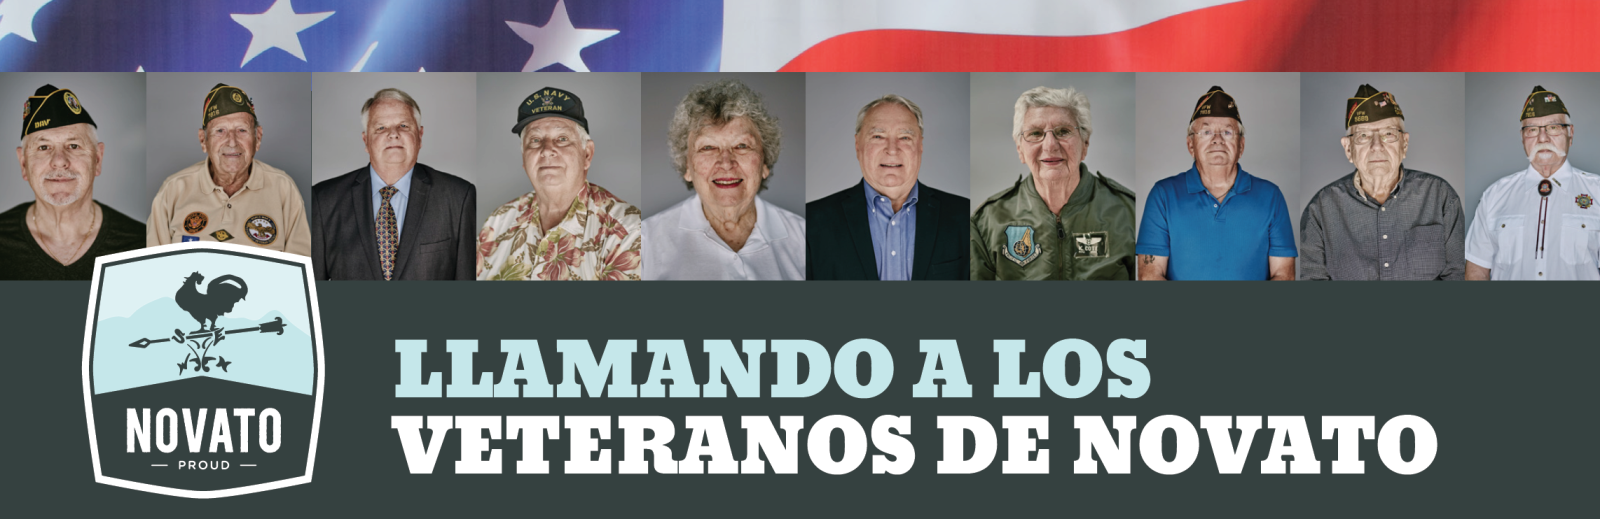 Photo of Veterans and call for Novato Veterans in Spanish